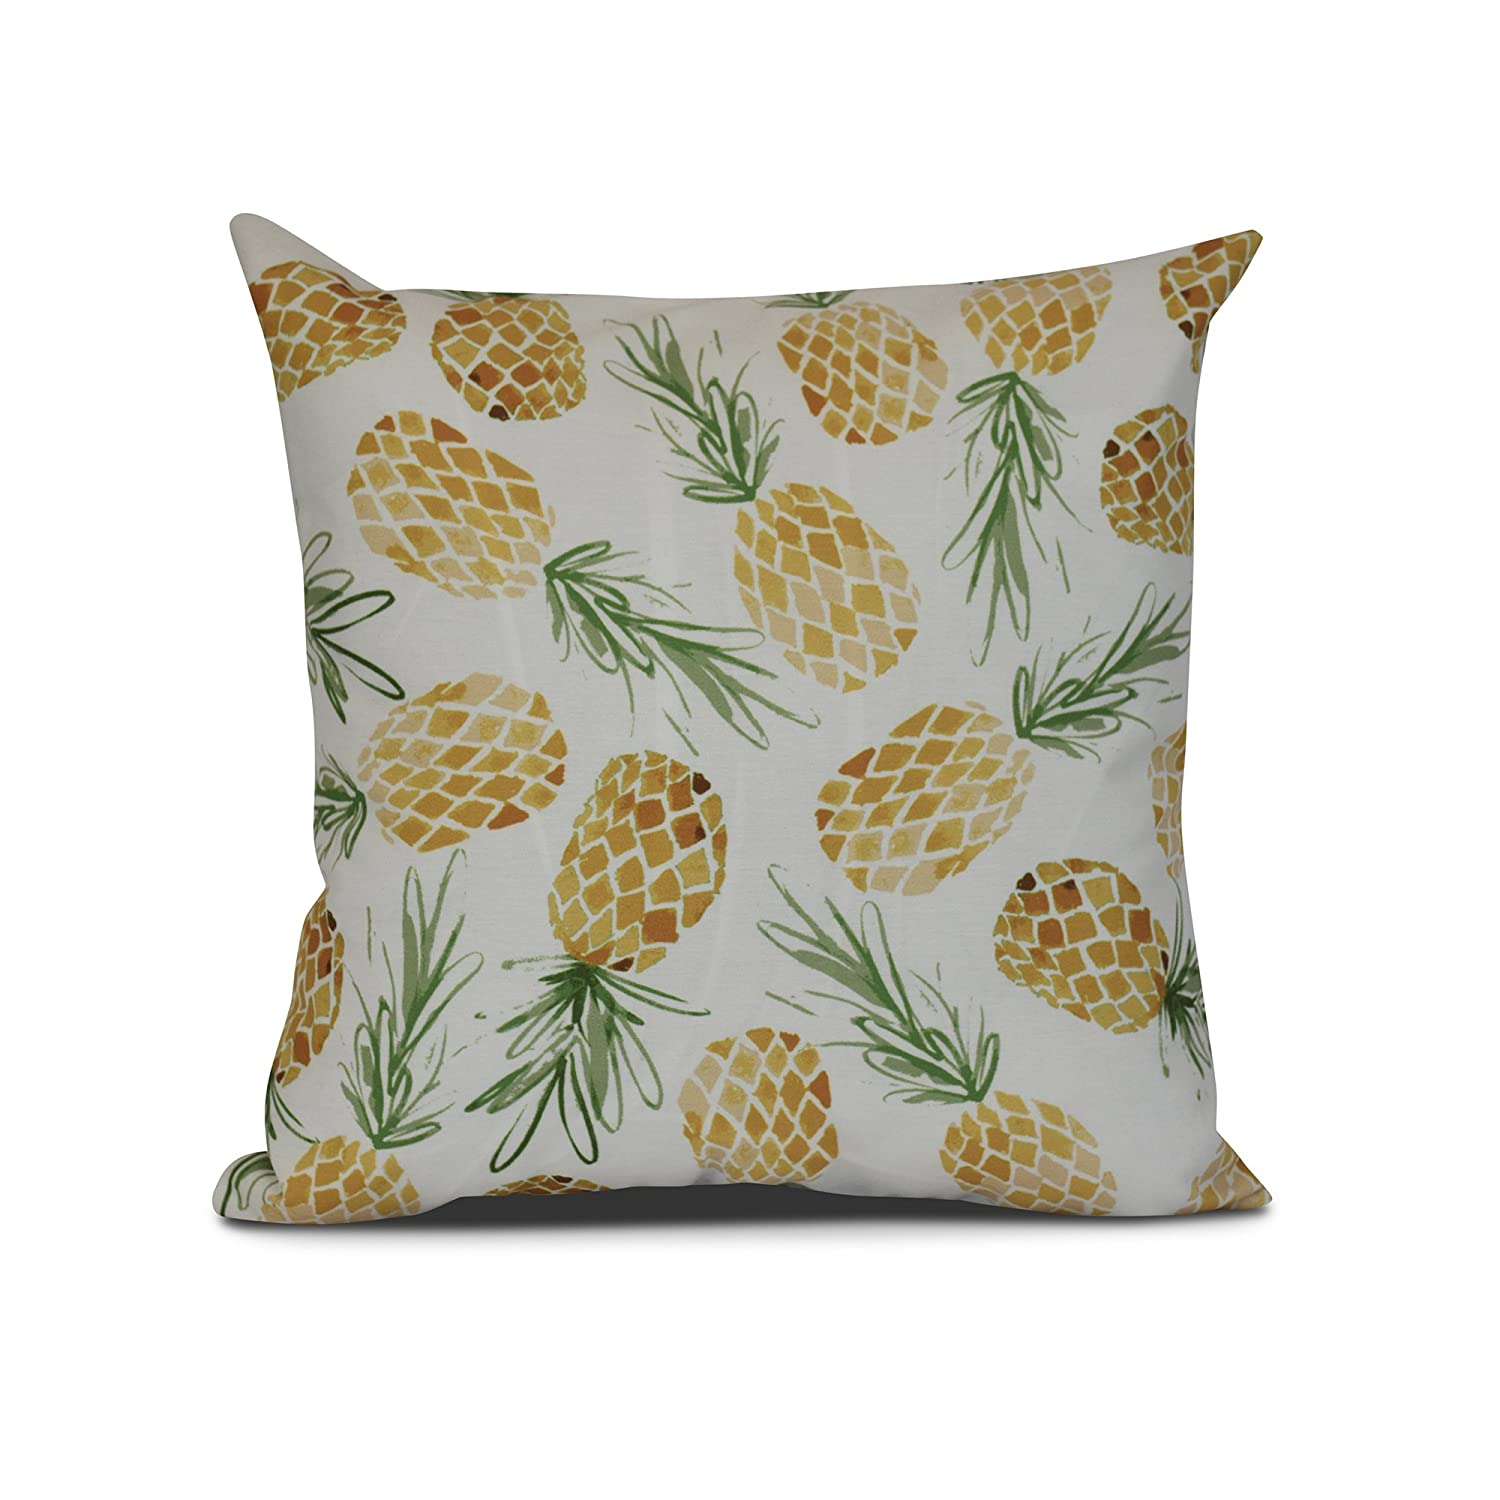 E byデザインTropical Resort Tossed Pineapples装飾枕 16L x 16W in. グリーン PG803YE6-16 B01MU83B9A グリーン 16L x 16W in.